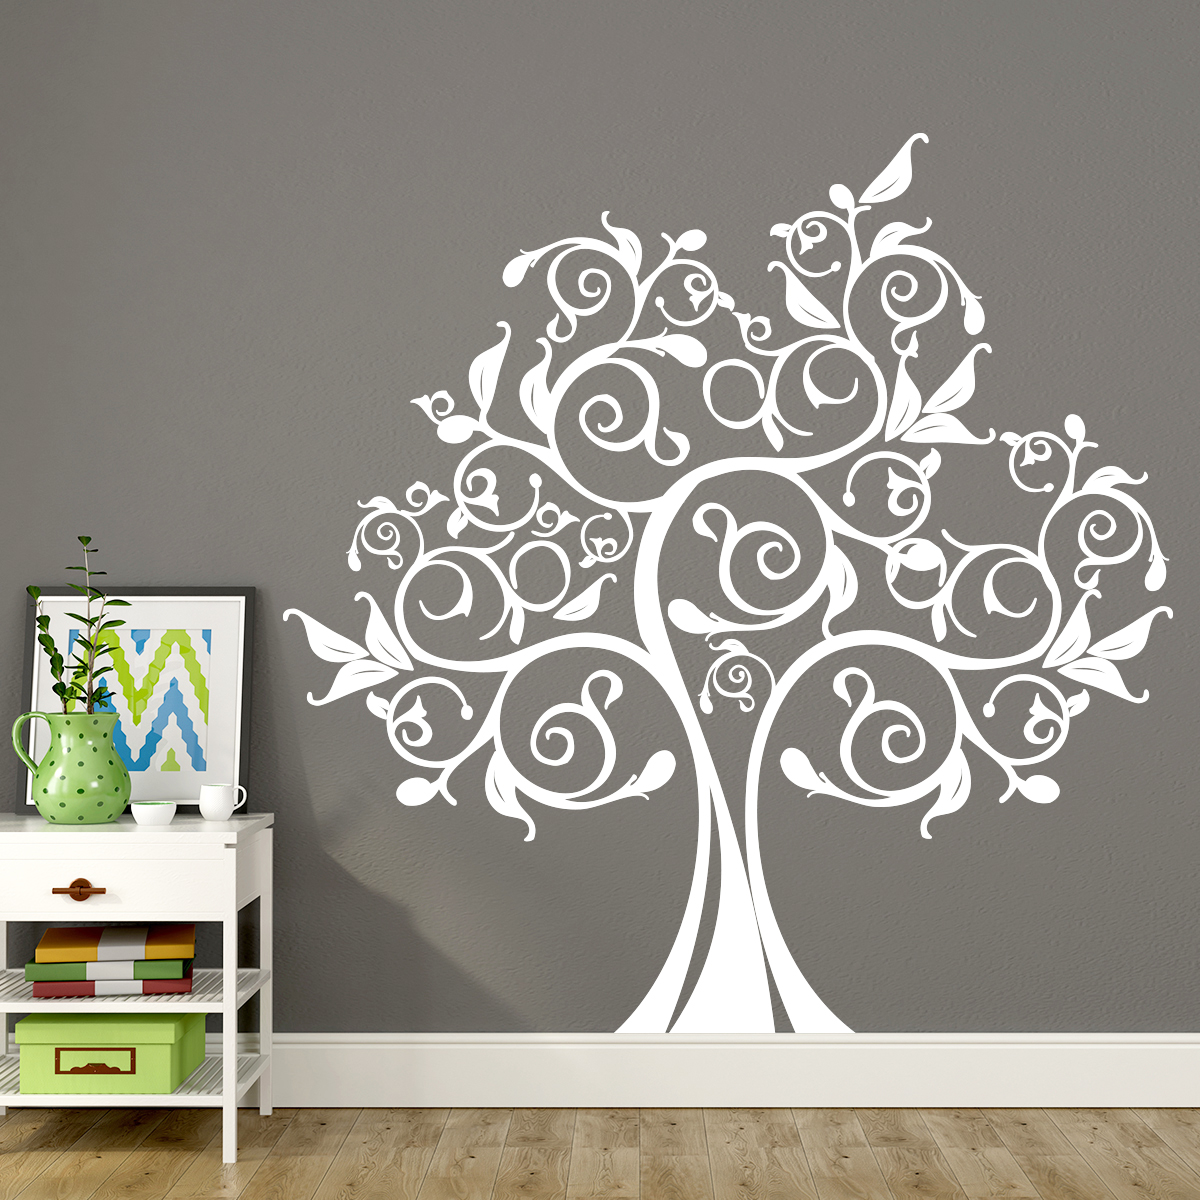 Sticker Arbre Et Feuilles Design Stickers Nature Arbres Ambiance